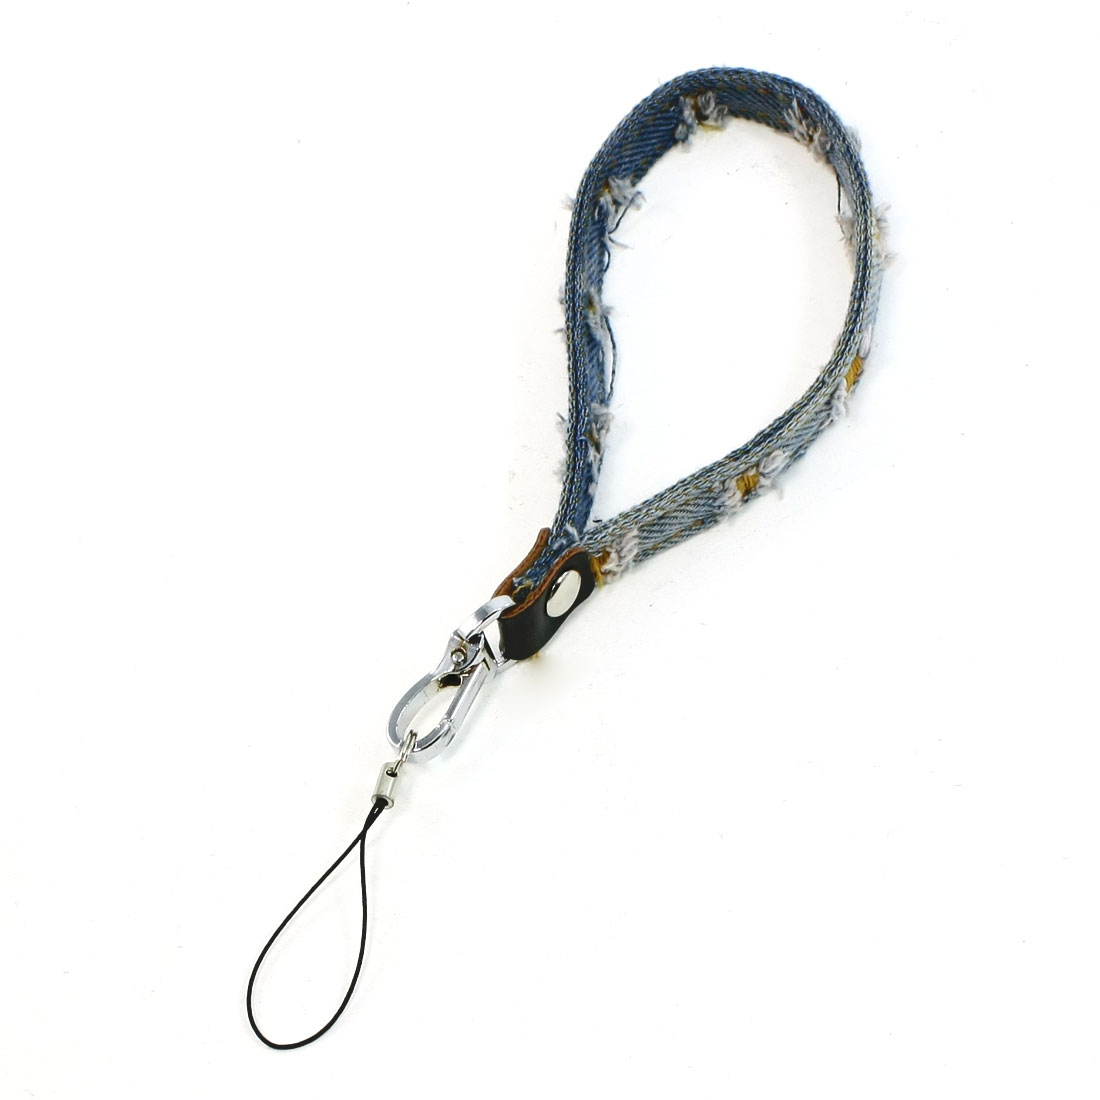 "Distressed Denim Spring Gate Clasp 8.6"" Length Cell Phone Camera Hanging Strap"